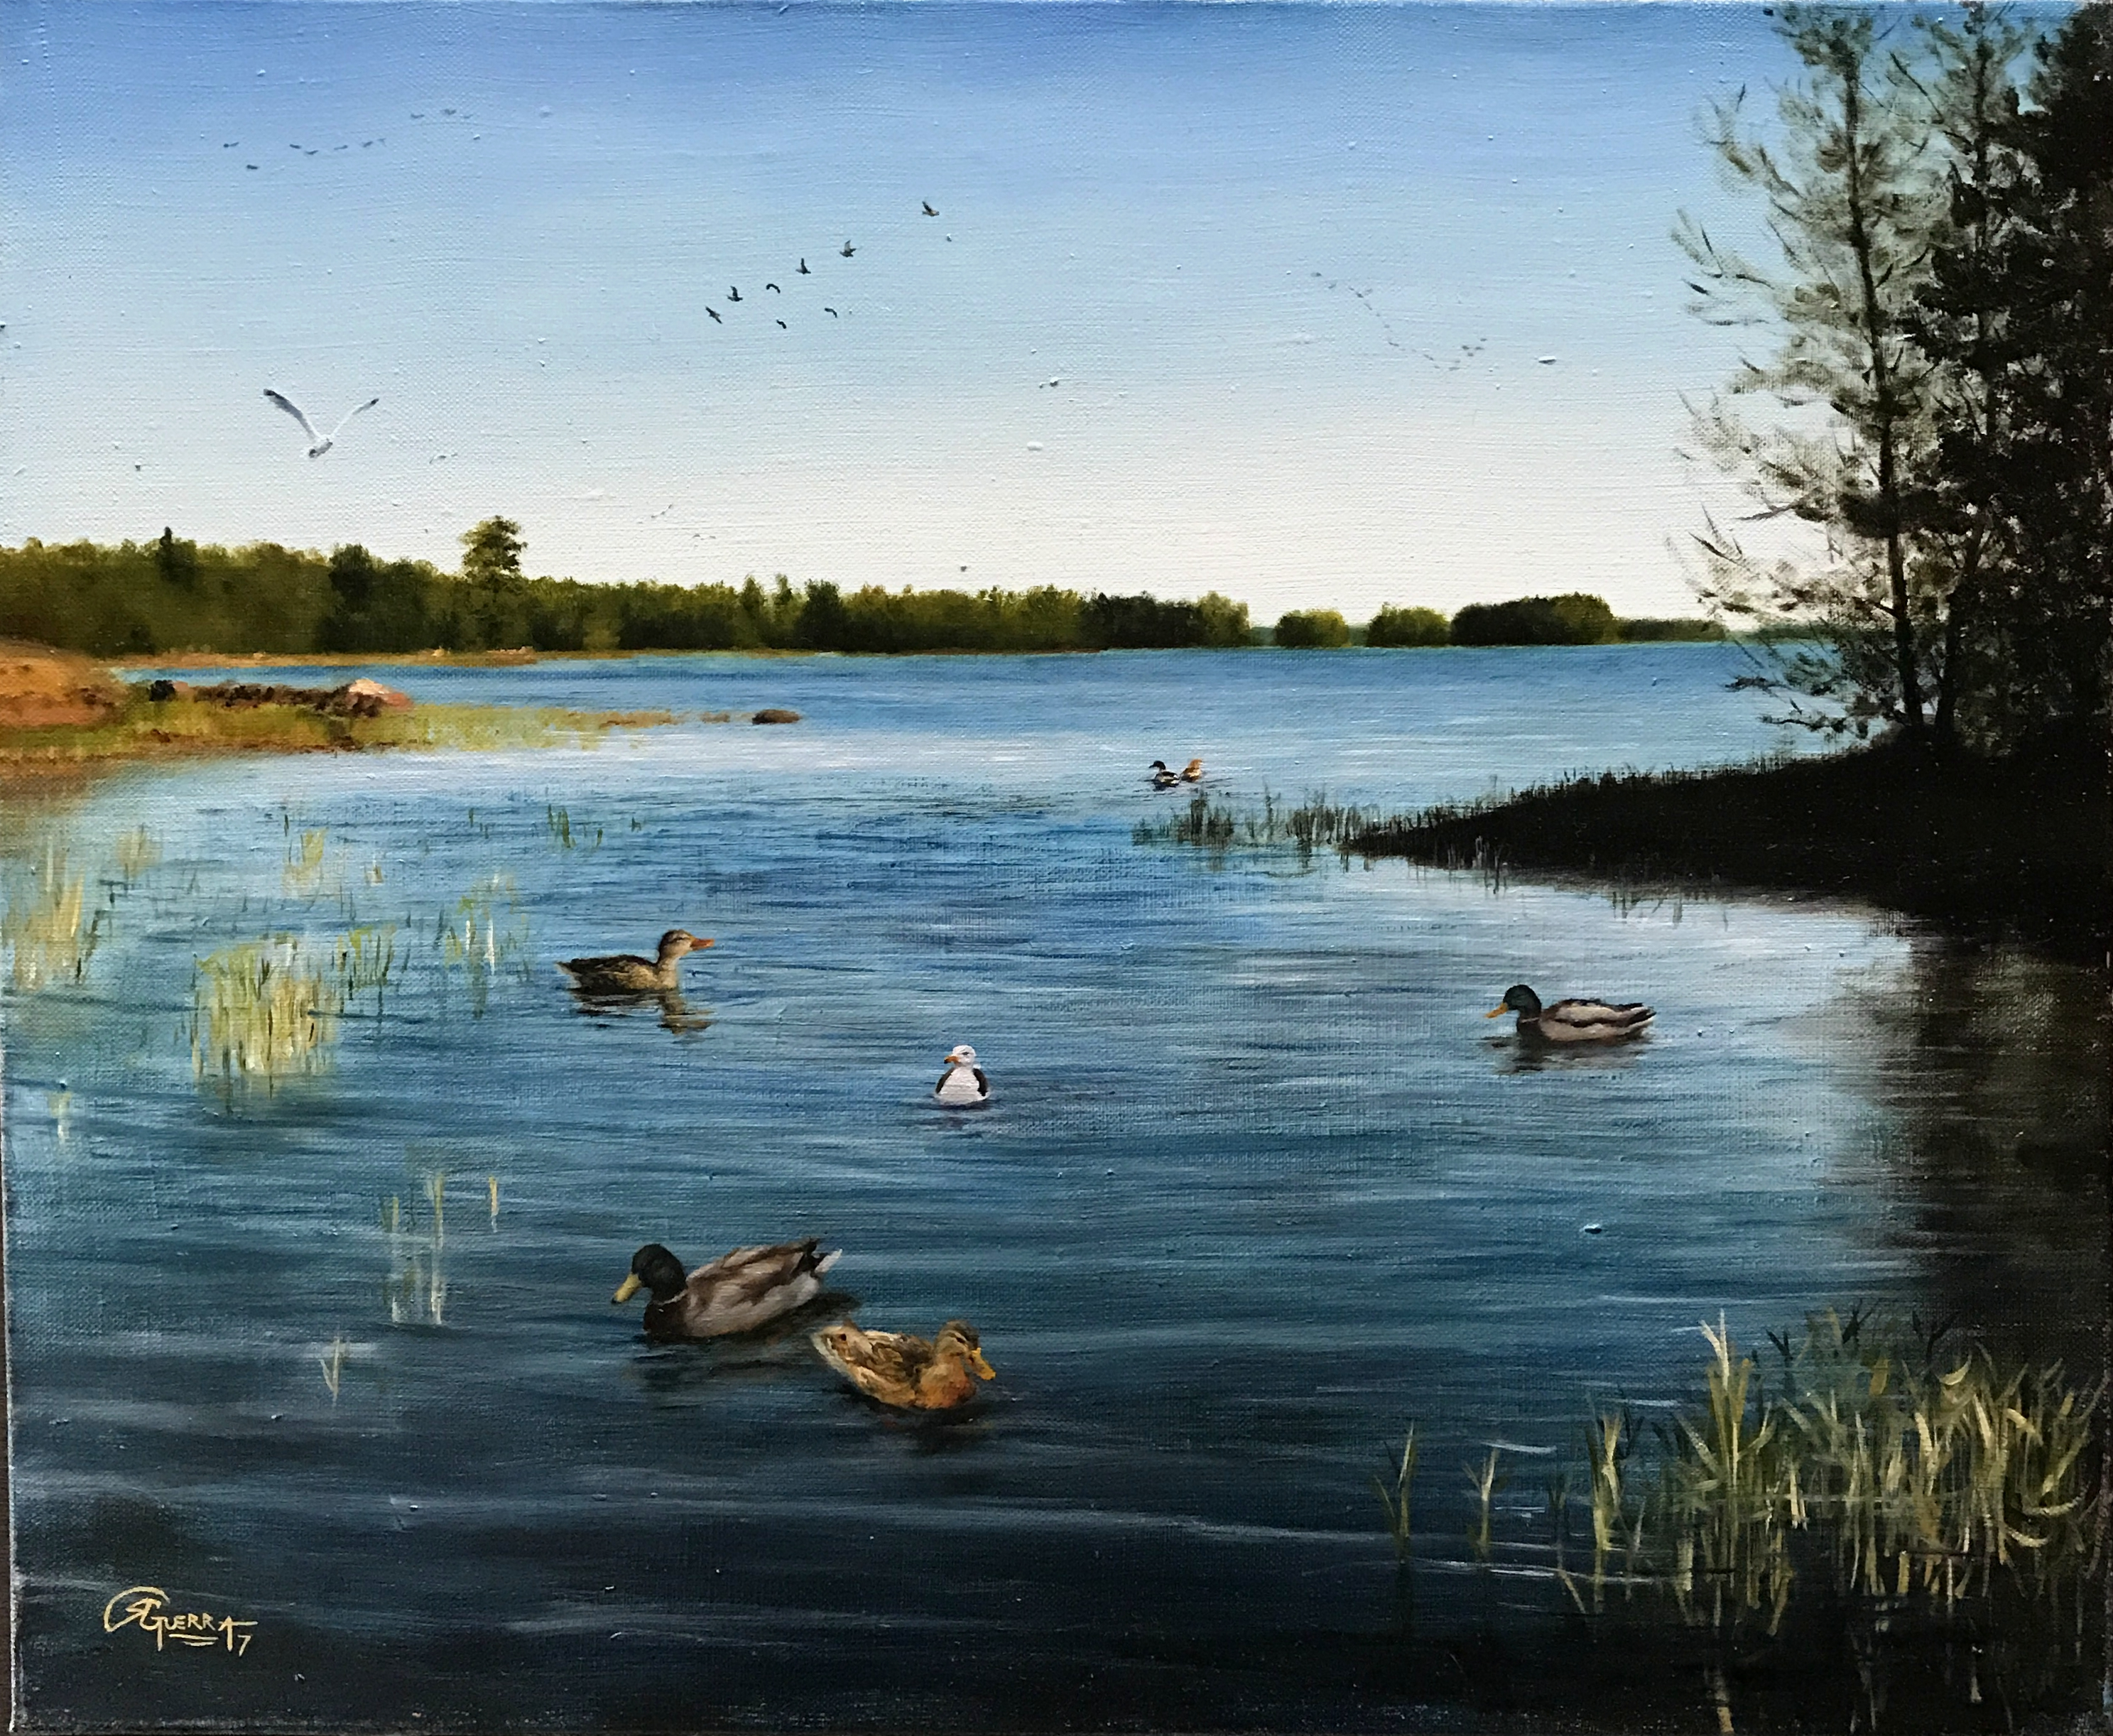 A Lake in Finland in Spring (May), Rafael Guerra Painting